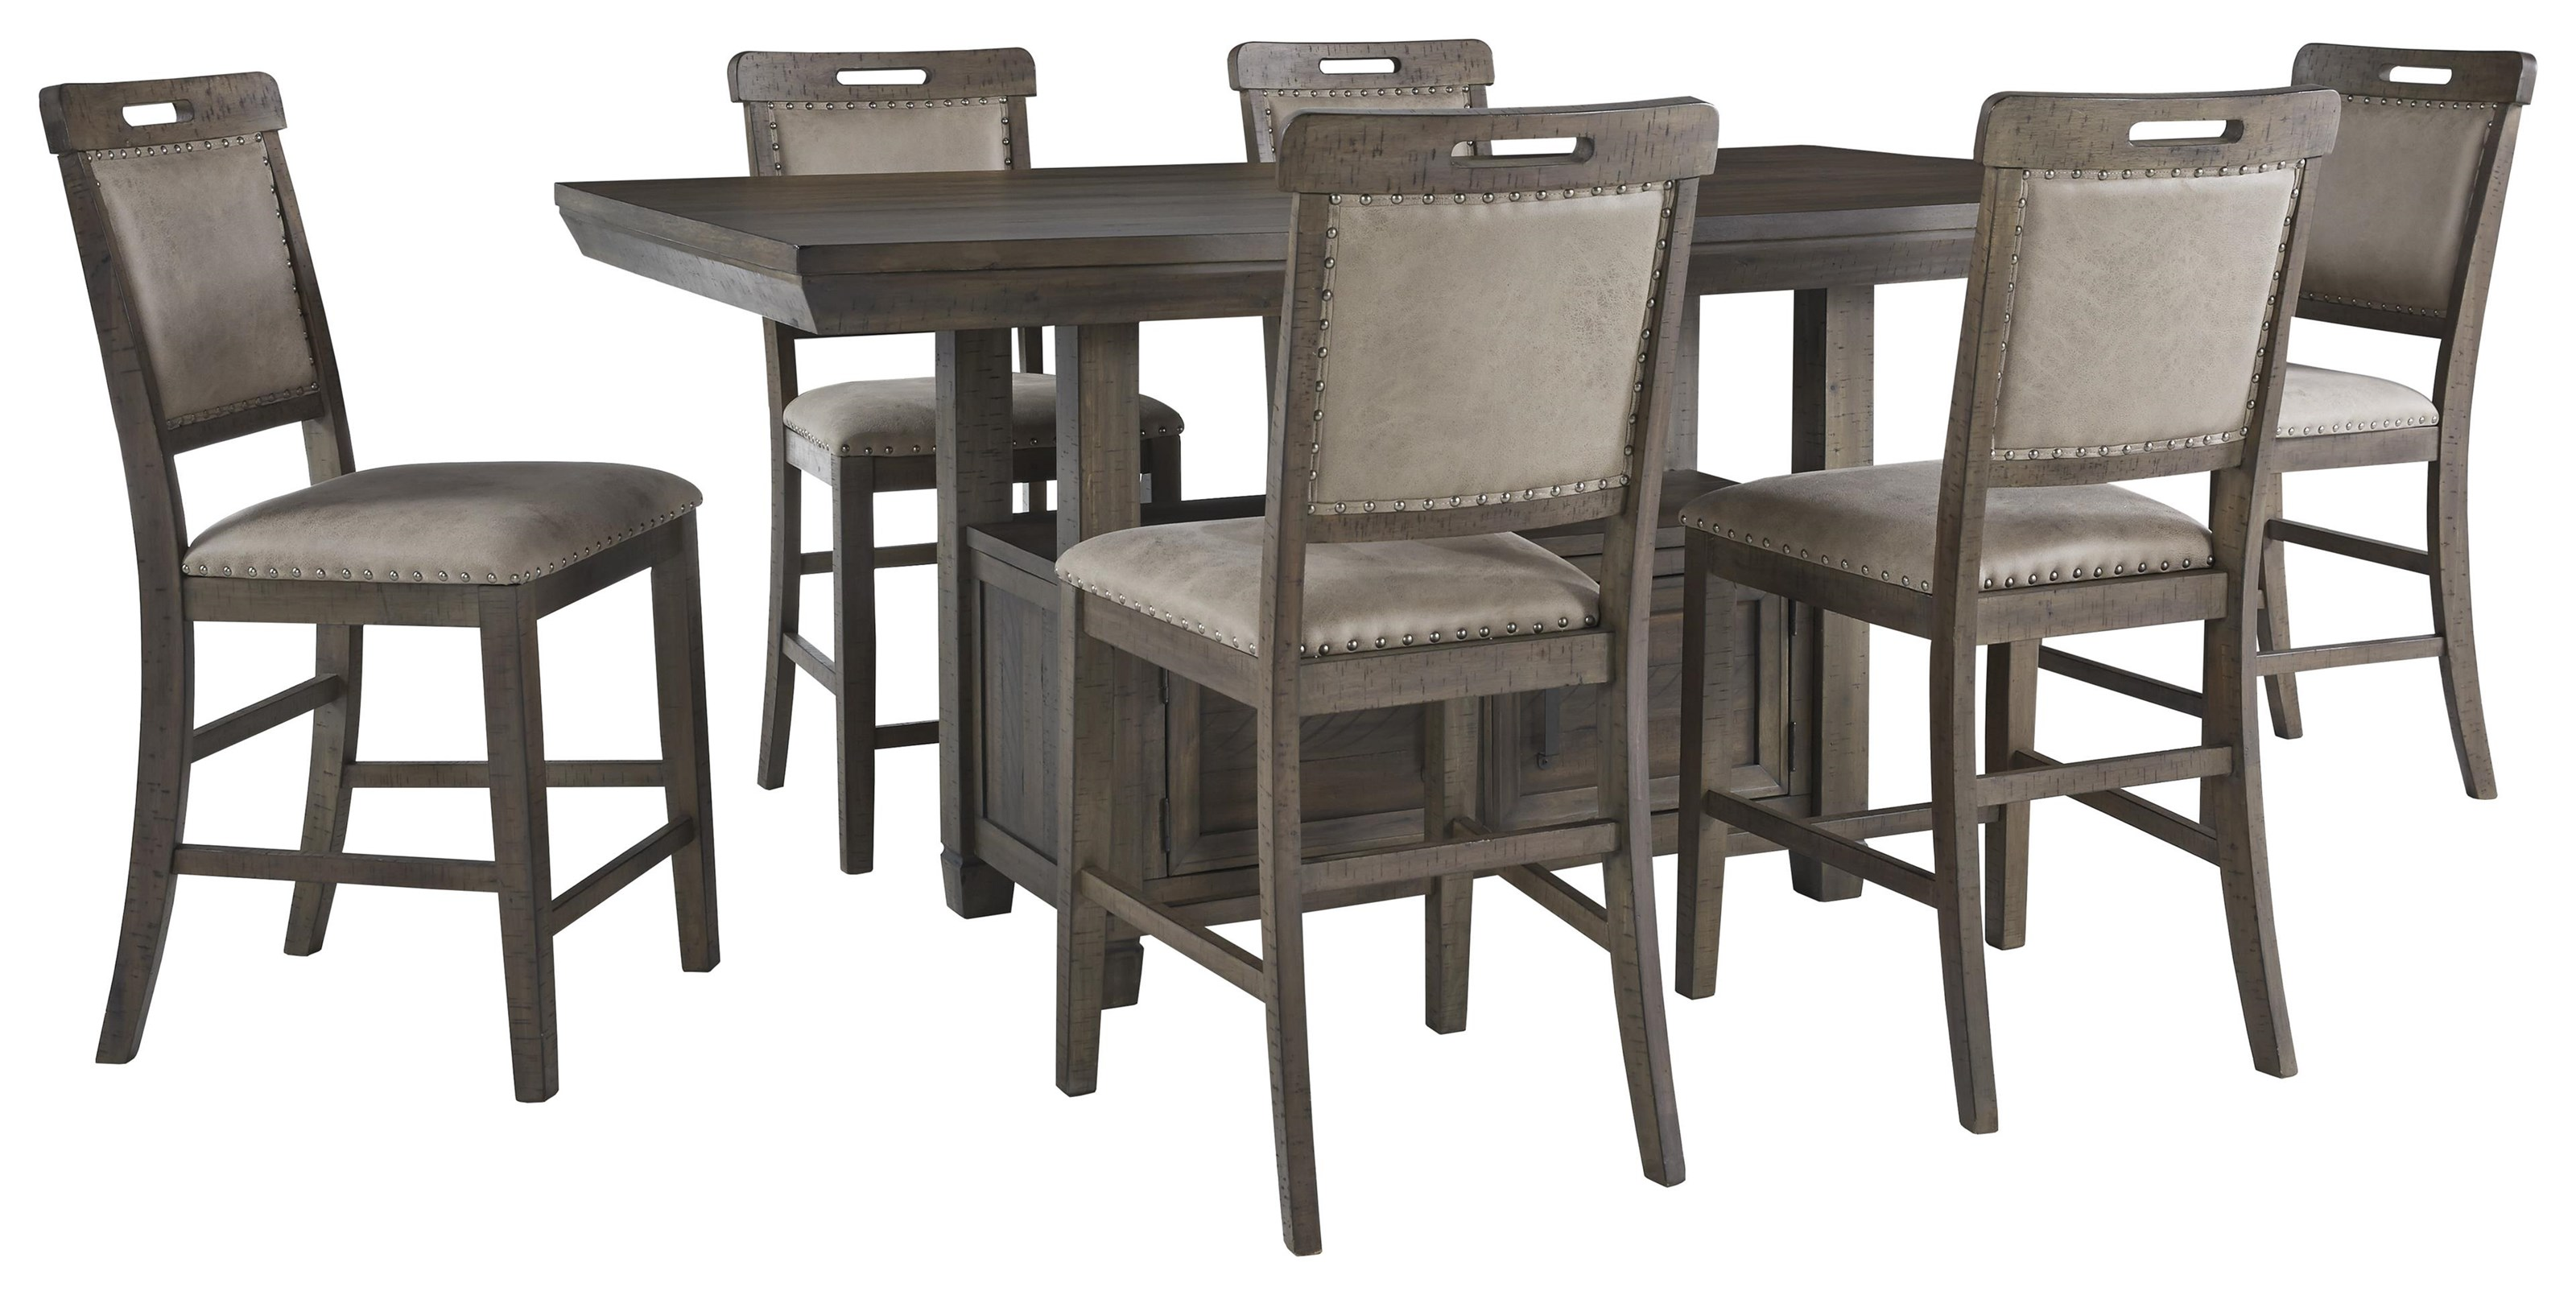 Sensational Johurst 7 Pc Dining Room Set Caraccident5 Cool Chair Designs And Ideas Caraccident5Info